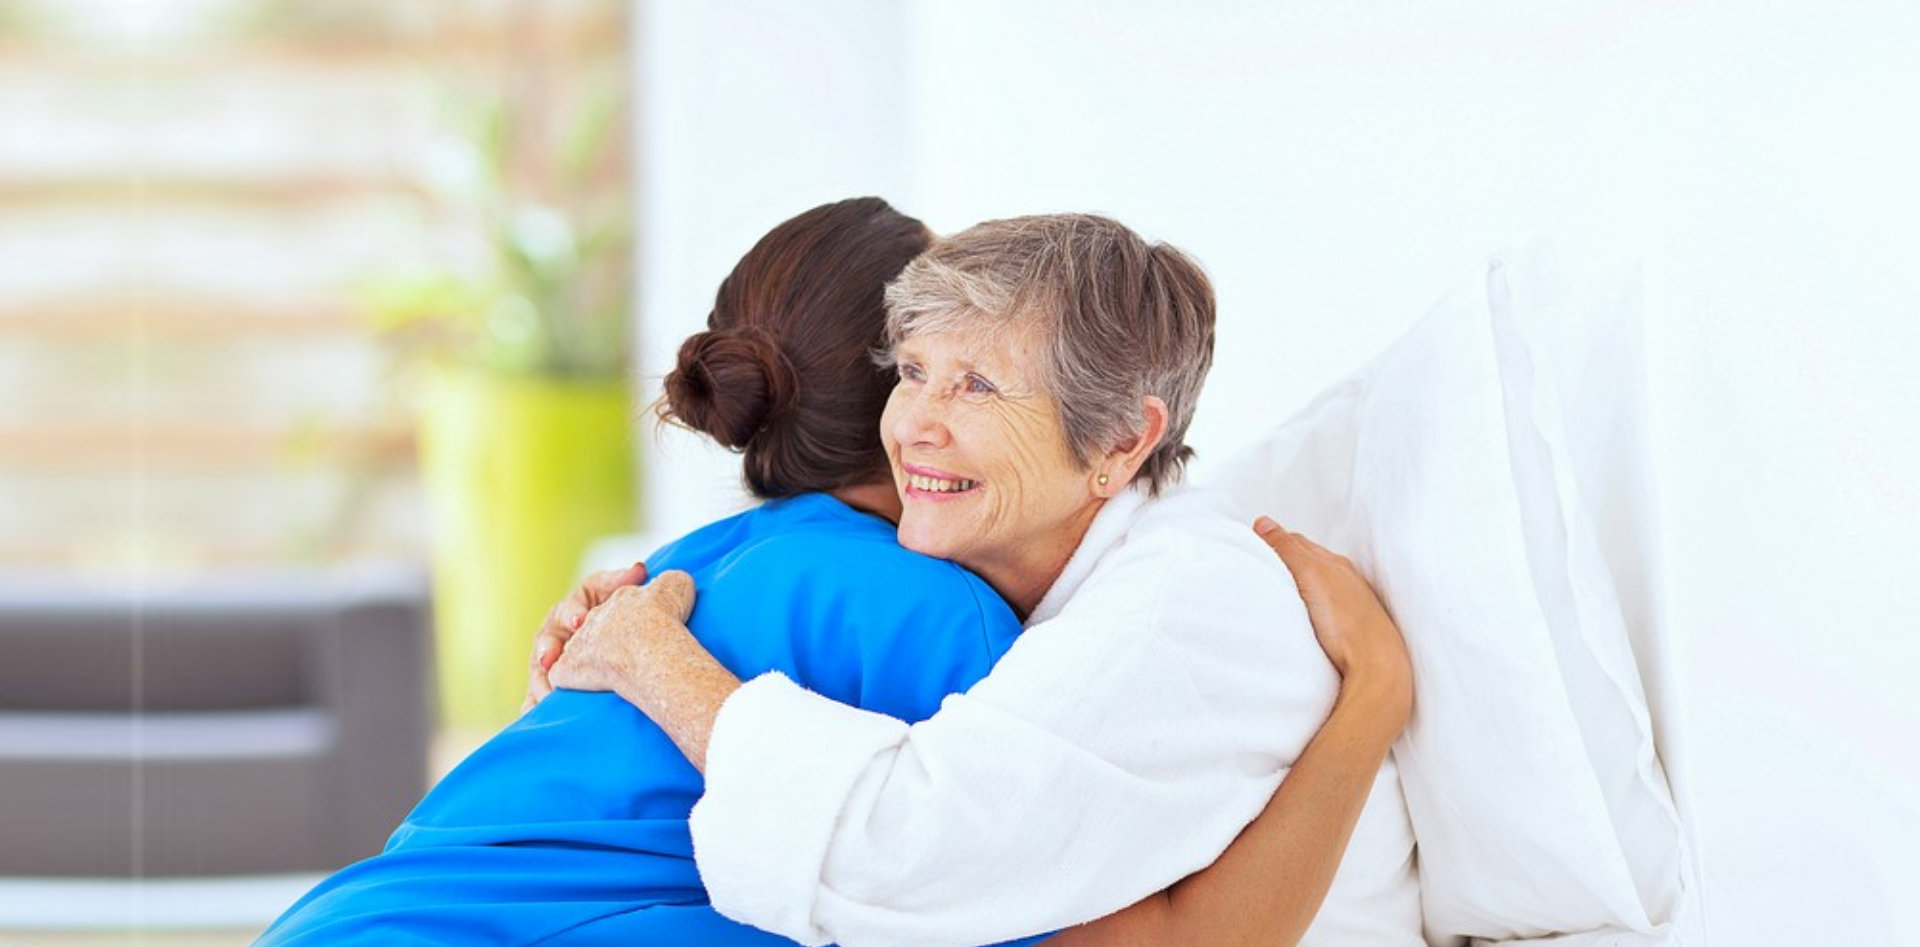 caregiver and senior woman hugging each other